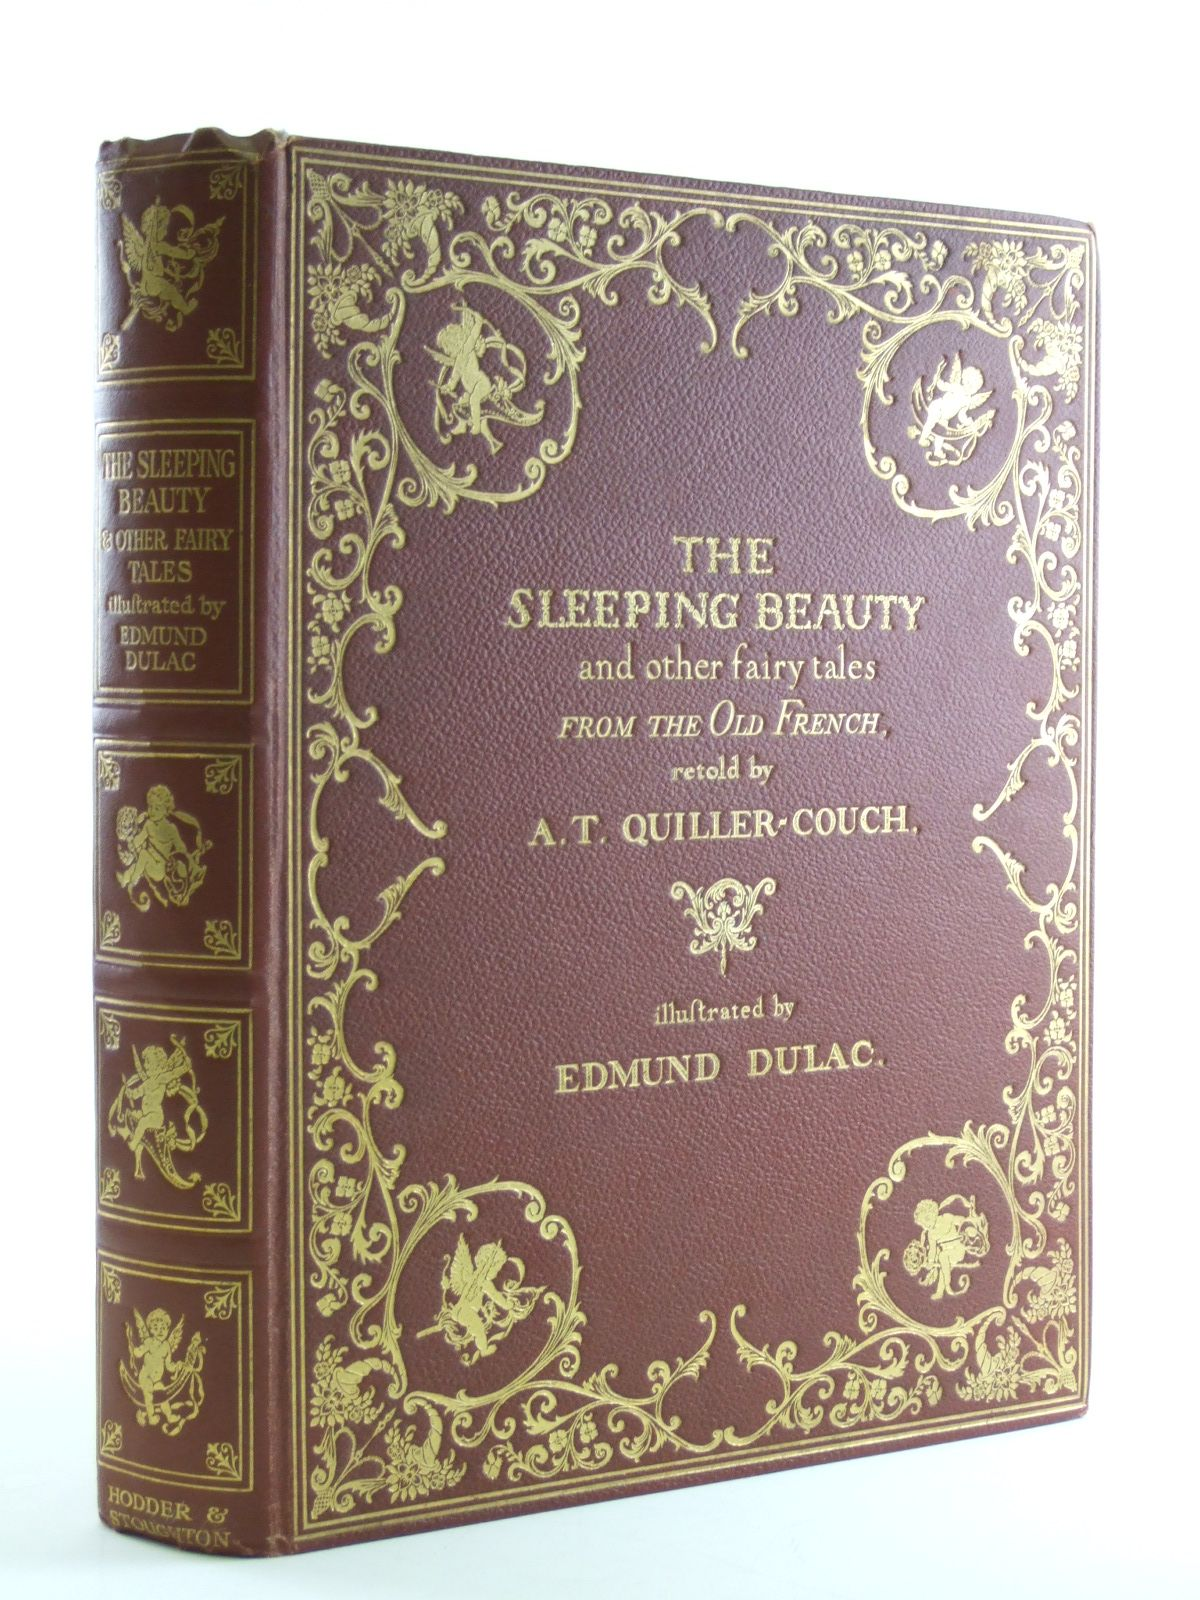 Photo of THE SLEEPING BEAUTY & OTHER FAIRY TALES FROM THE OLD FRENCH written by Quiller-Couch, Arthur illustrated by Dulac, Edmund published by Hodder & Stoughton (STOCK CODE: 1108296)  for sale by Stella & Rose's Books